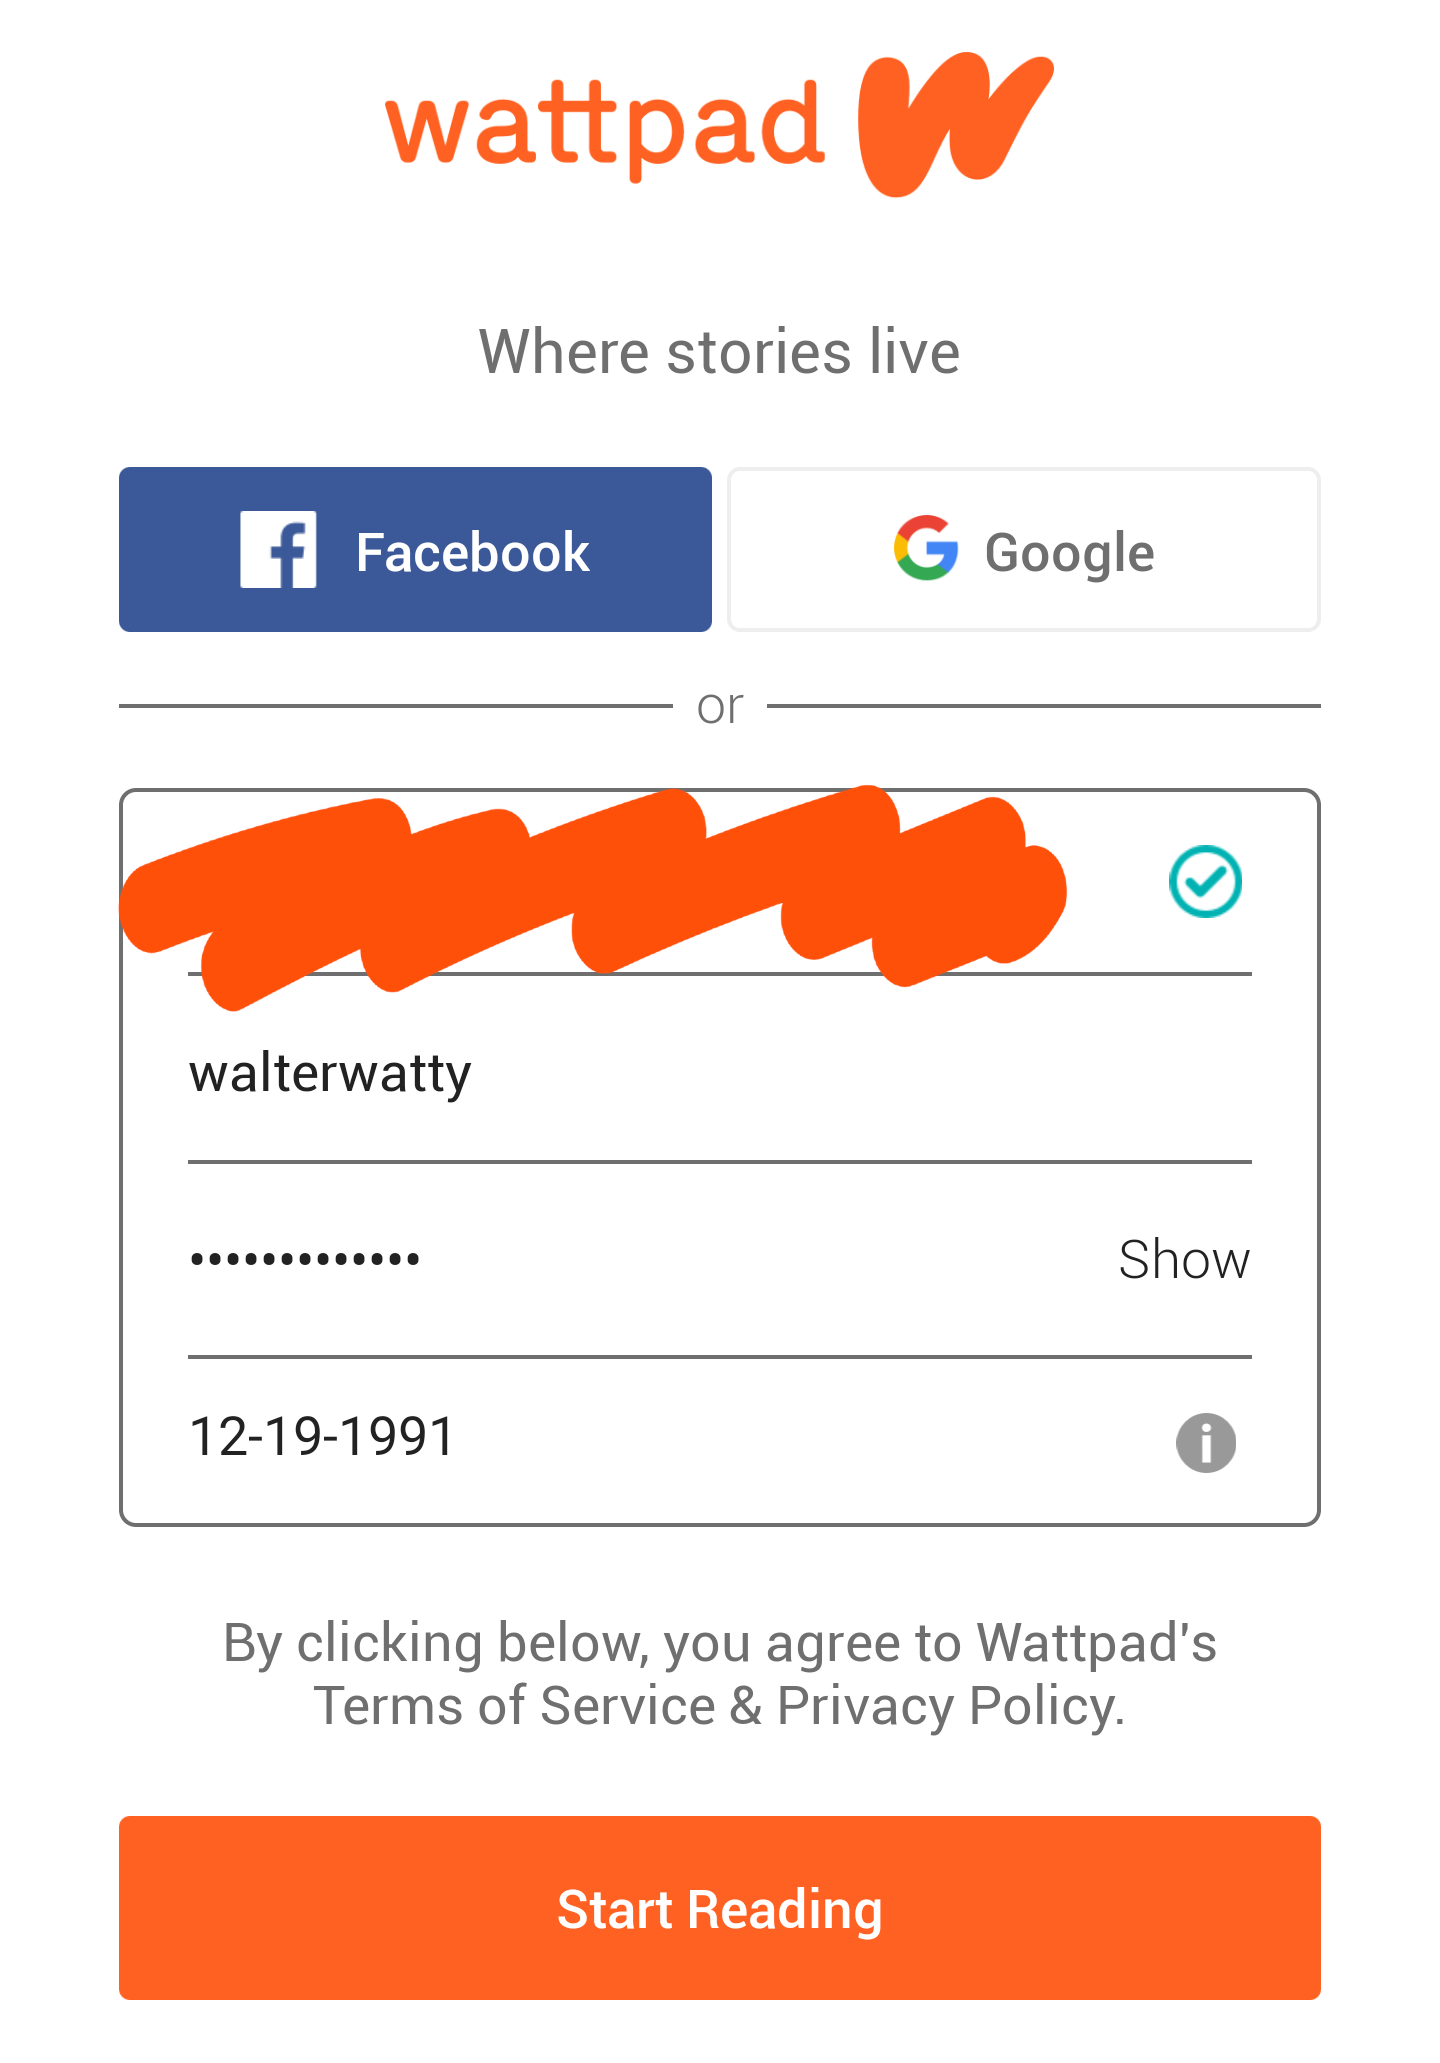 An image of the Wattpad sign-up page on a mobile device, with blank fields for email address, username, password, and birthday.